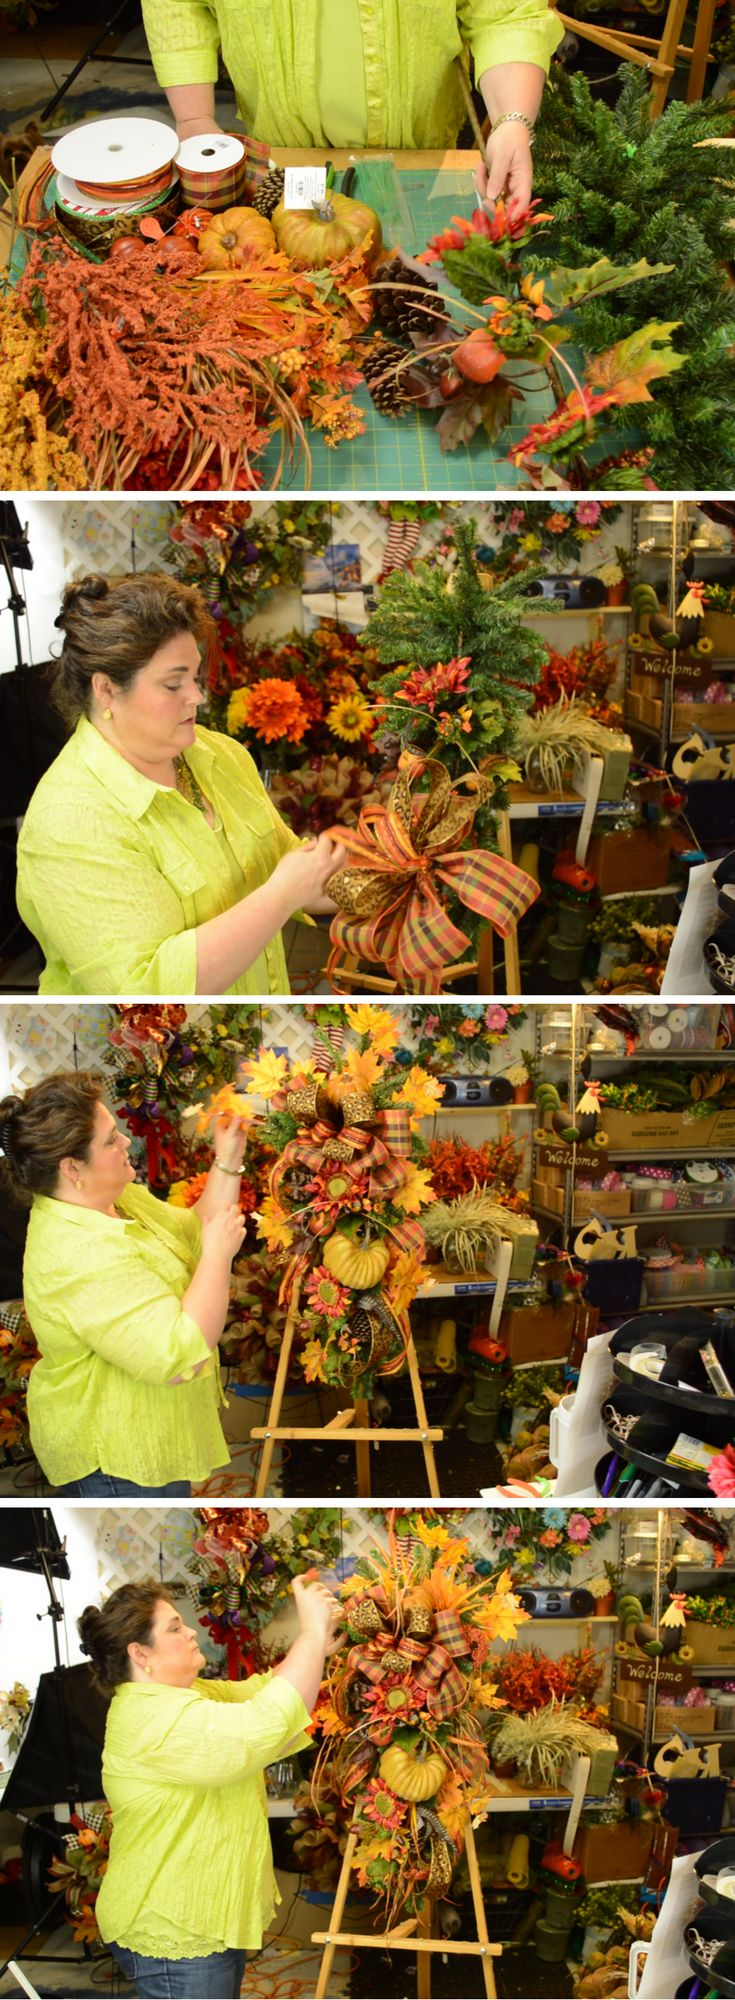 How to make a teardrop swag. Julie Siomacco of Southern Charm Wreaths teaches you how to make a professional fall teardrop swag in this downloadable video. http://www.makewreaths.com/videos/fall-teardrop-swag